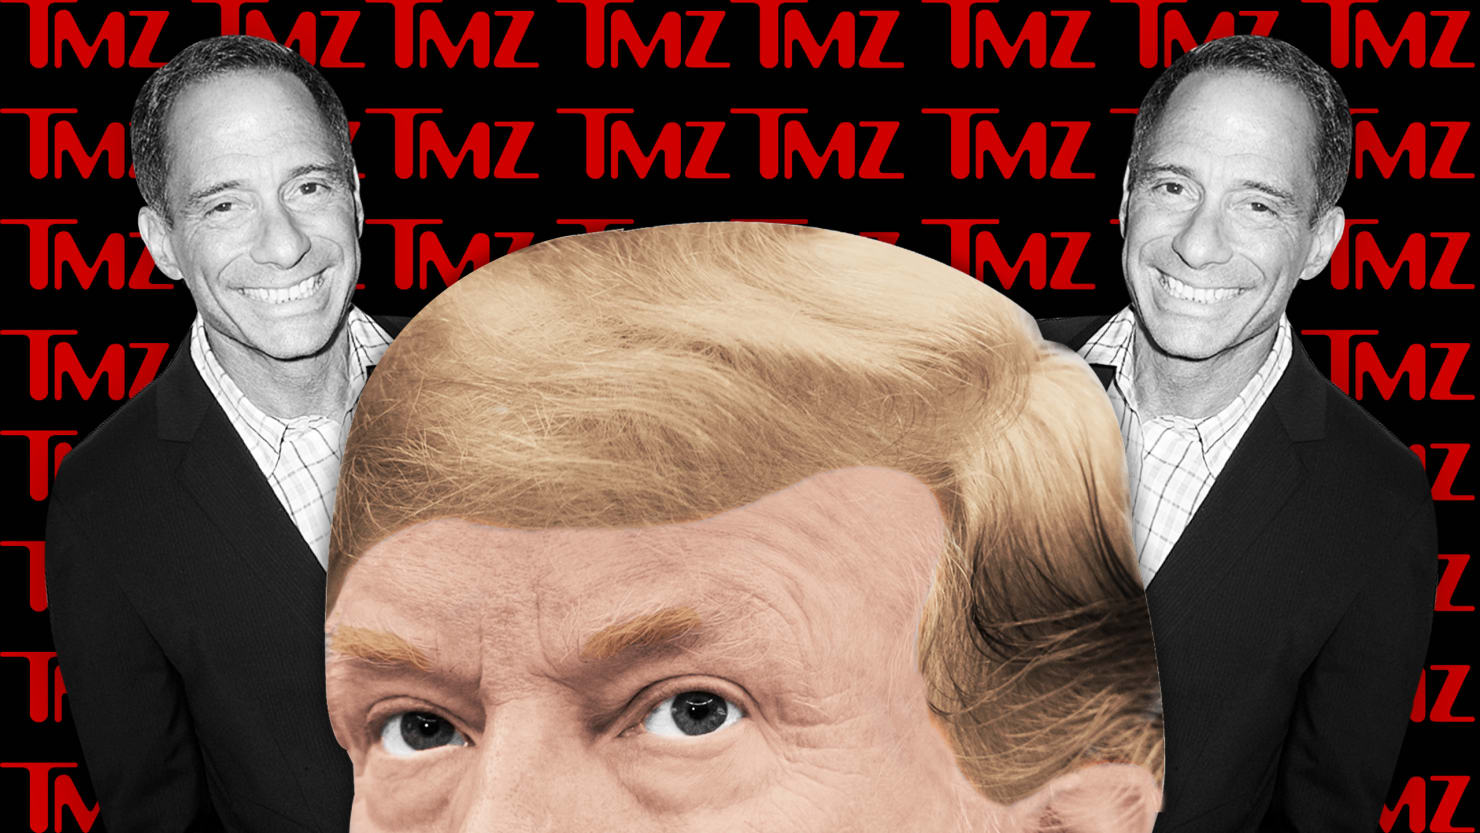 TMZ Goes MAGA: How Harvey Levin's Gossip Empire Became Trump's Best Friend